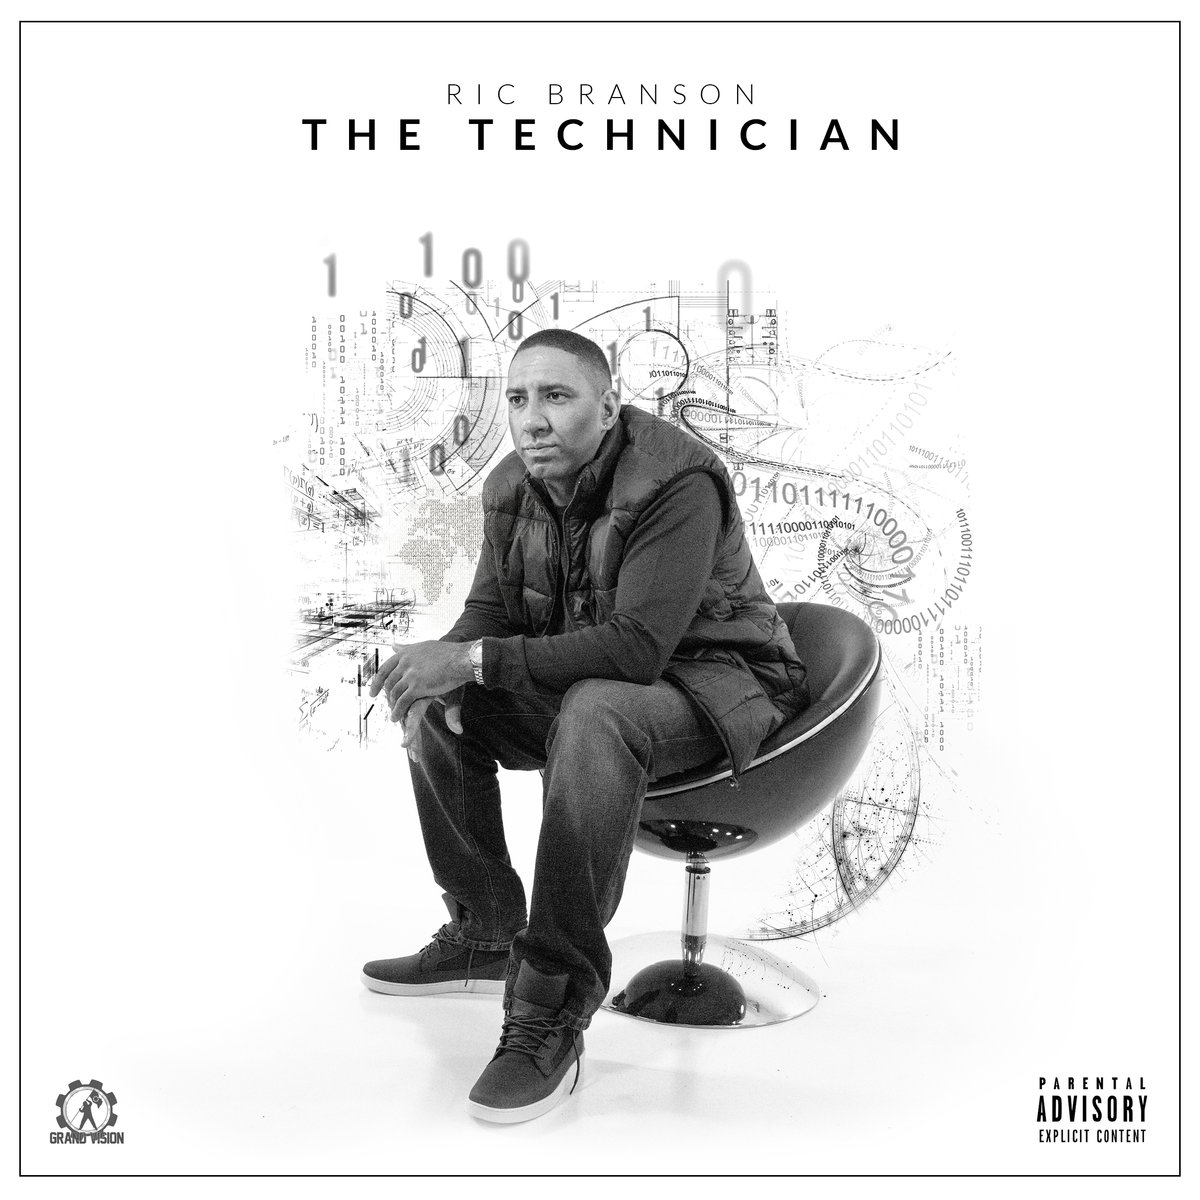 Ric_branson_-_the_technician